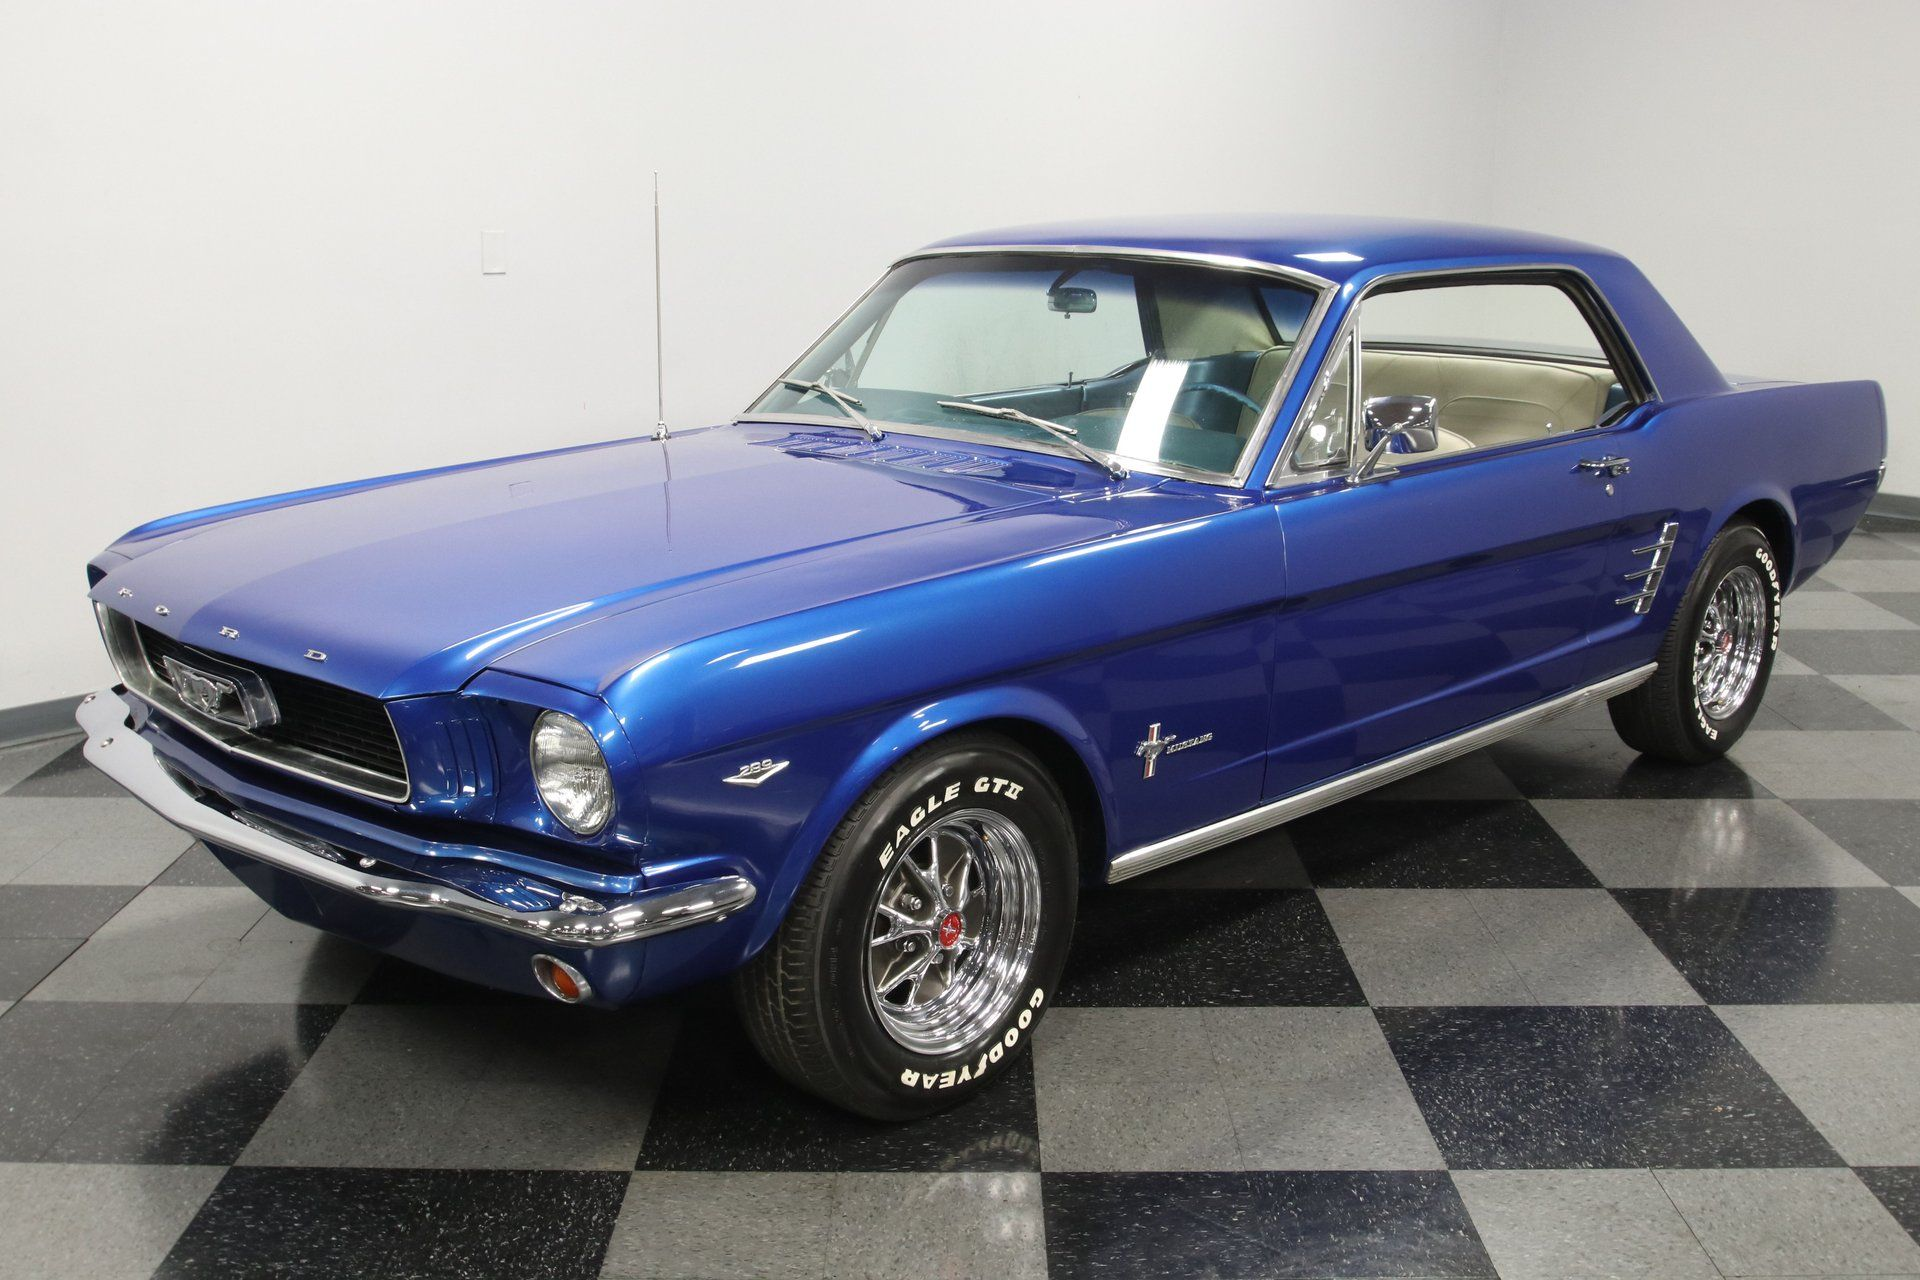 1966 Ford Mustang Streetside Classics The Nation S Trusted Classic Car Consignment Dealer 1966 Ford Mustang Ford Mustang Coupe Ford Mustang